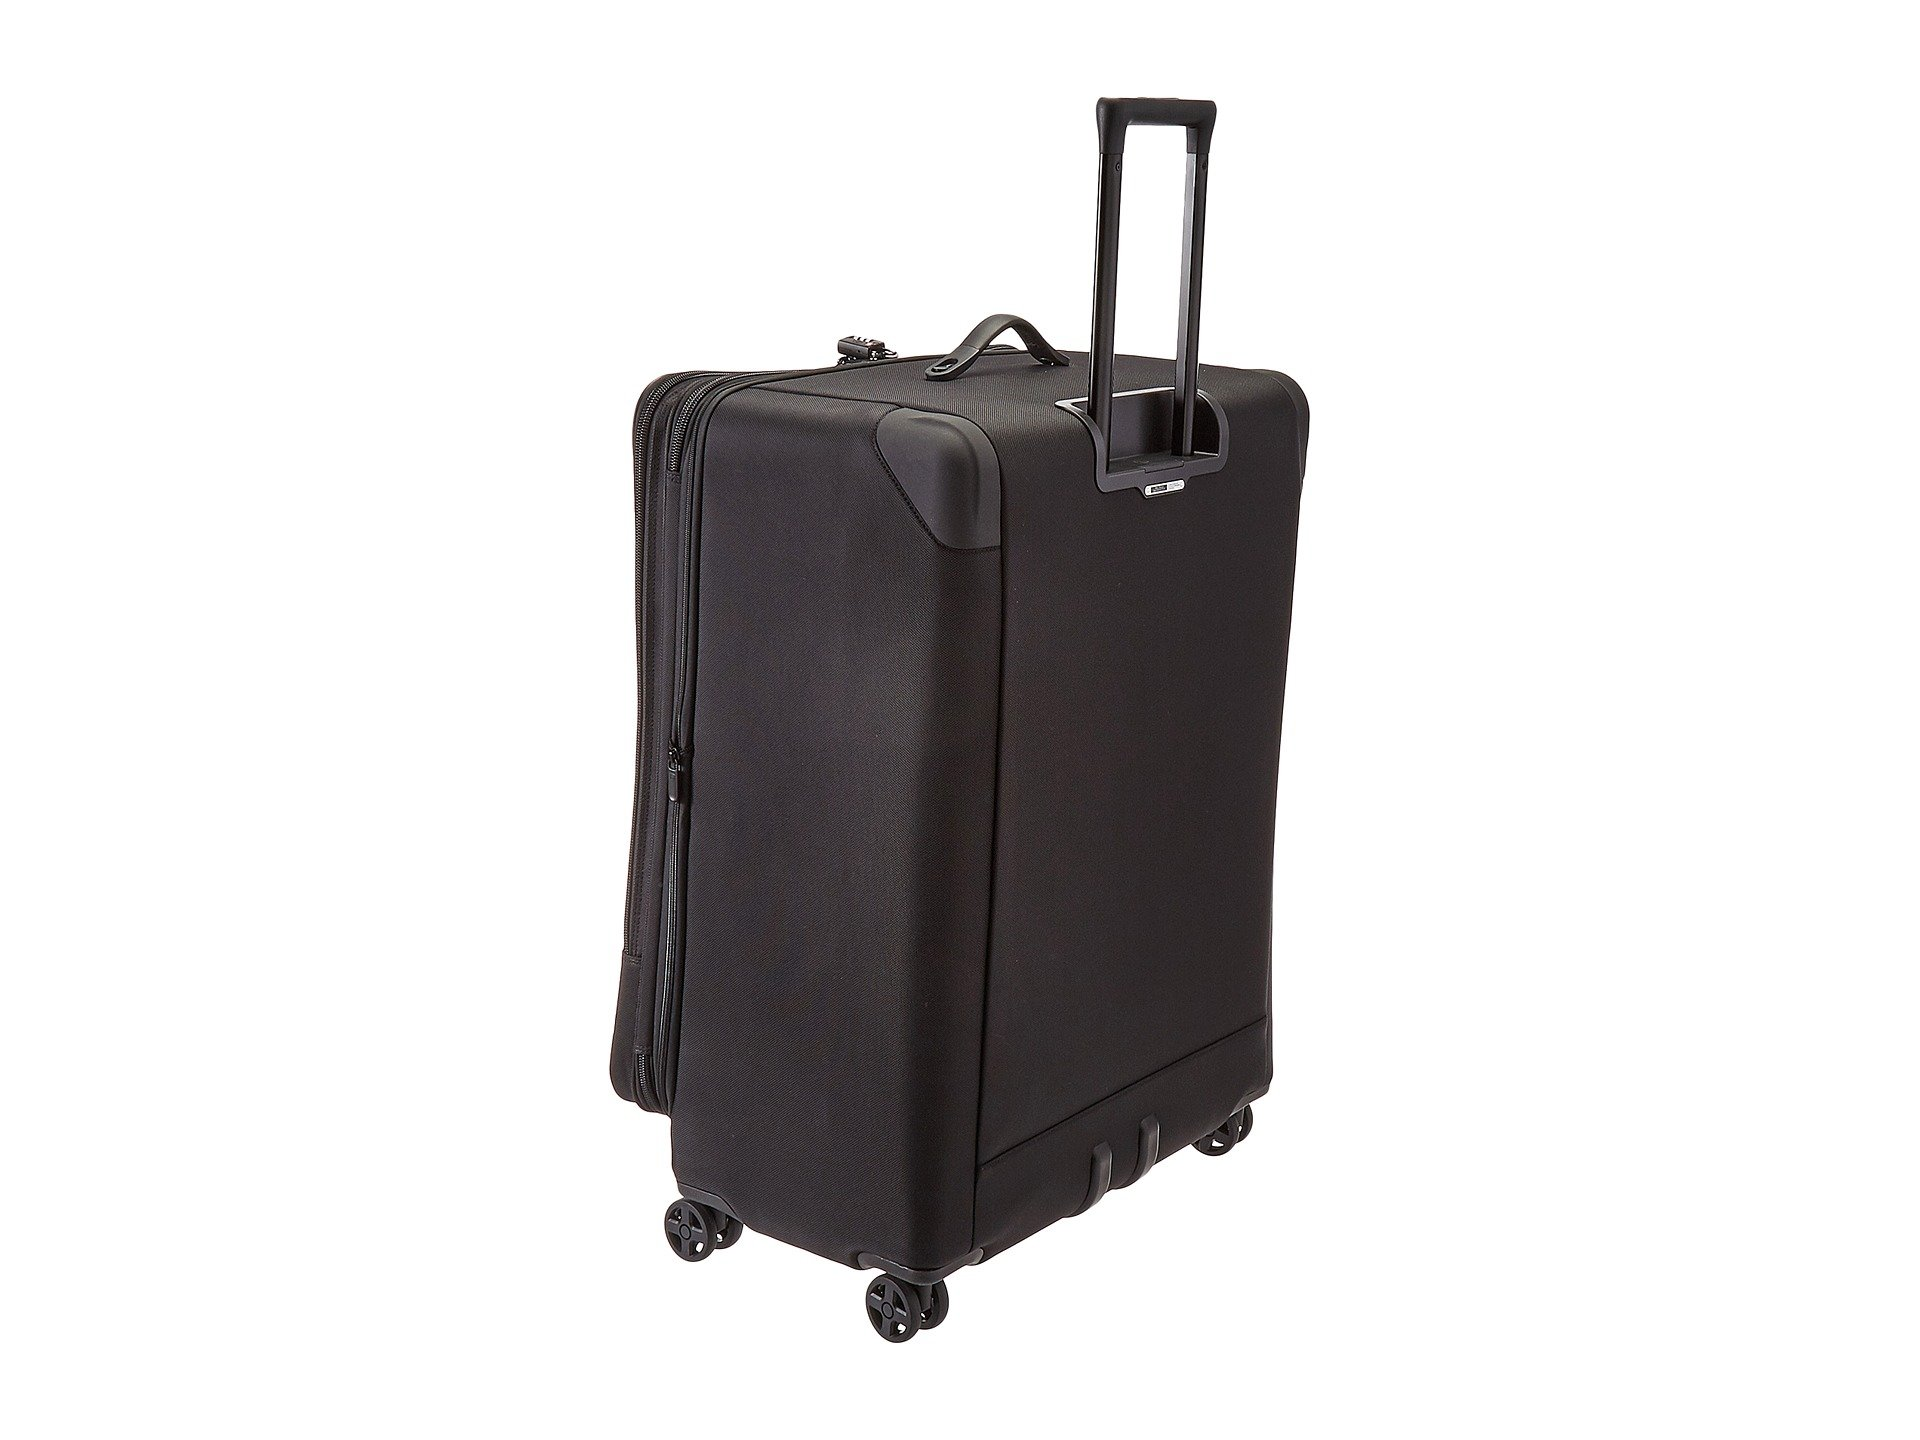 Lexicon Packing Case Black Extra caster 2 0 Dual Victorinox large dUqCd